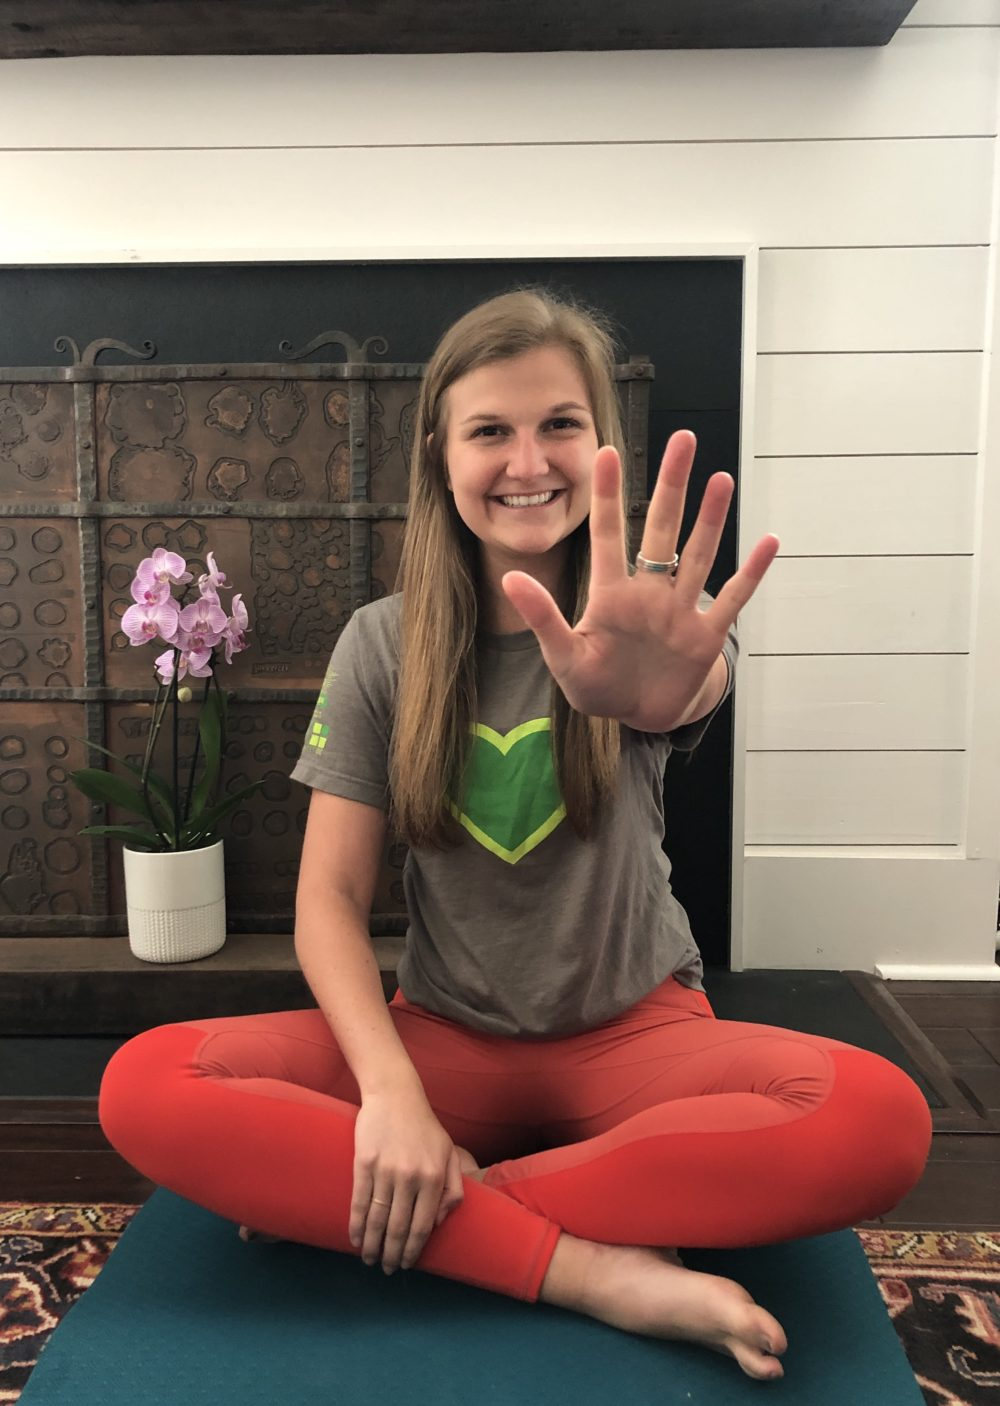 5 Finger Meditation and Green Heart Gratitude